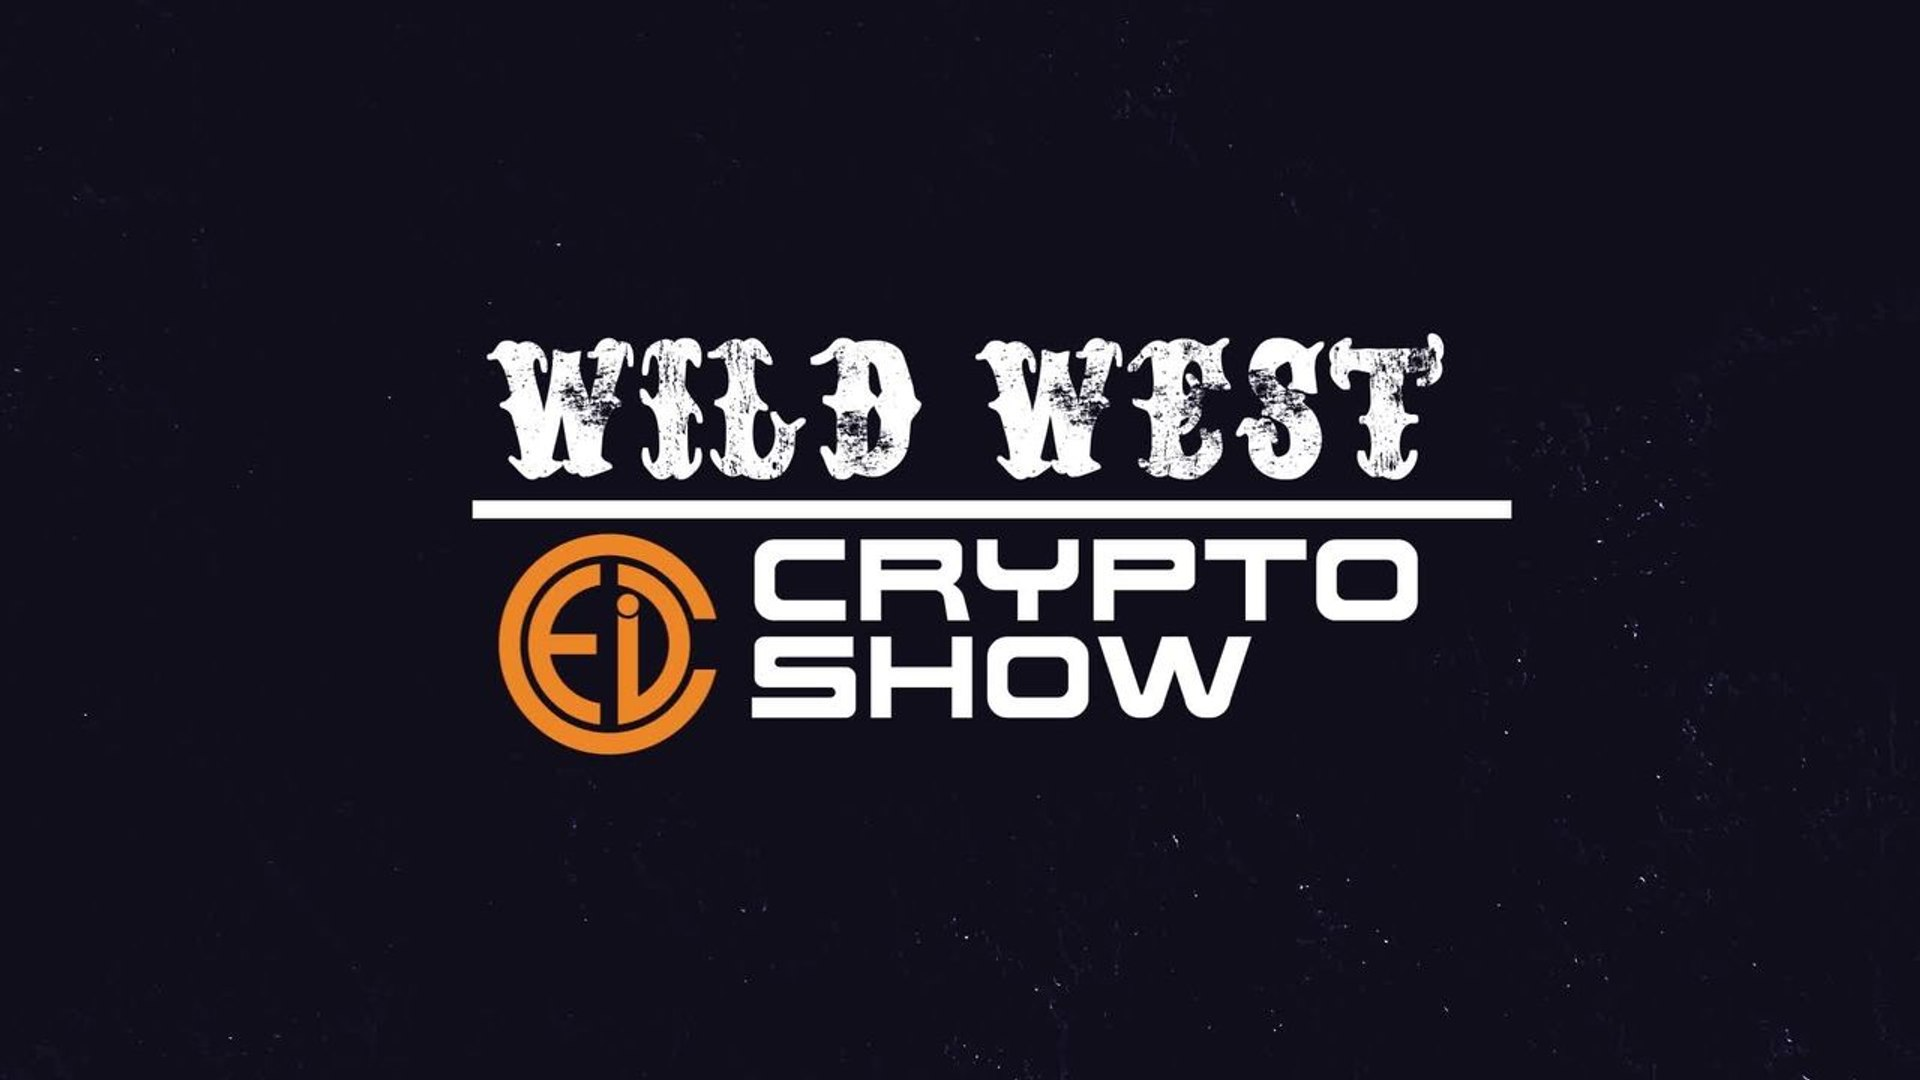 Wild West Crypto Show Episode #54 - Martin Weiss releases Crypto Report on Fundamentals